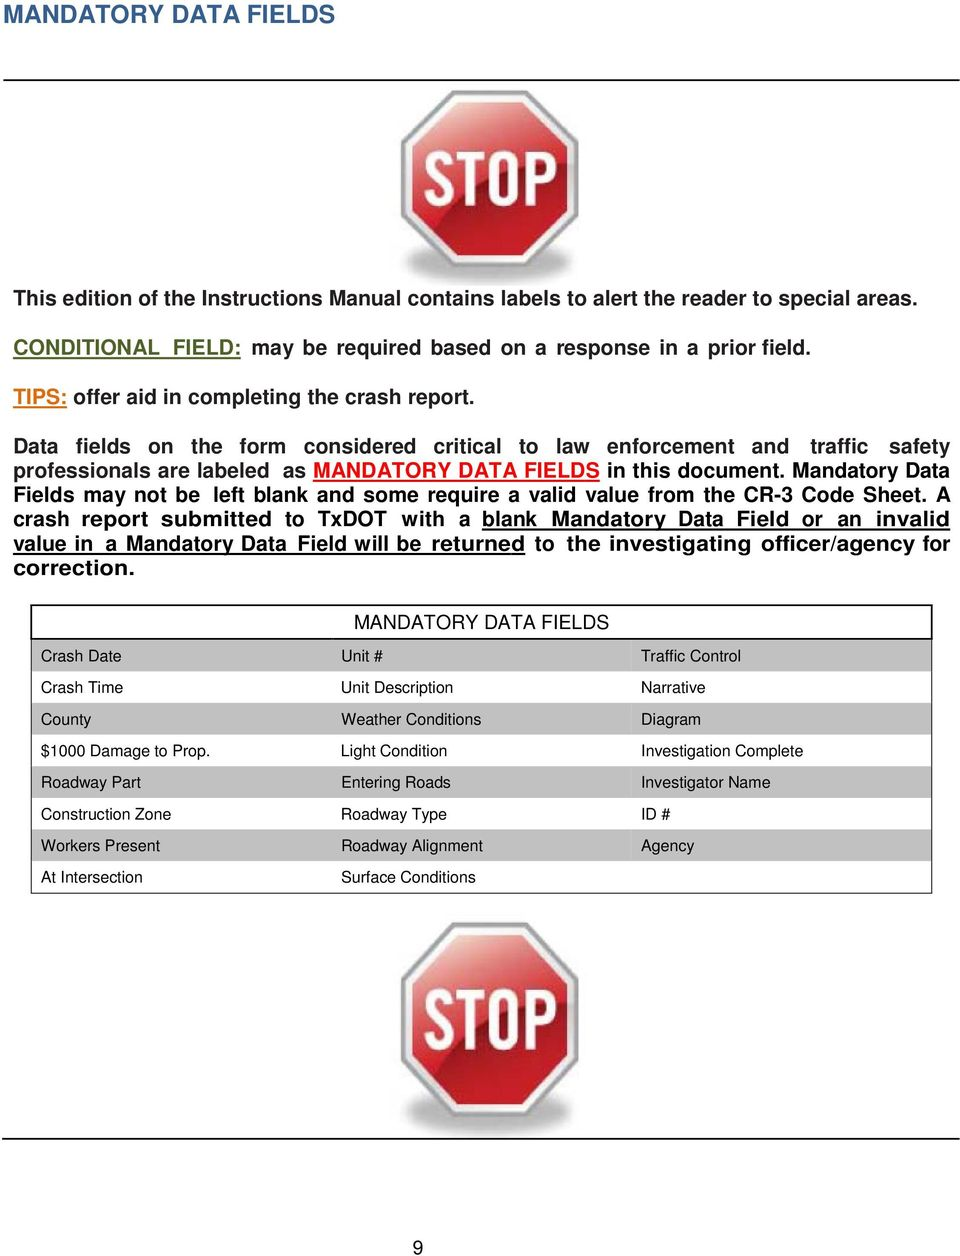 INSTRUCTIONS TO POLICE FOR REPORTING CRASHES - PDF